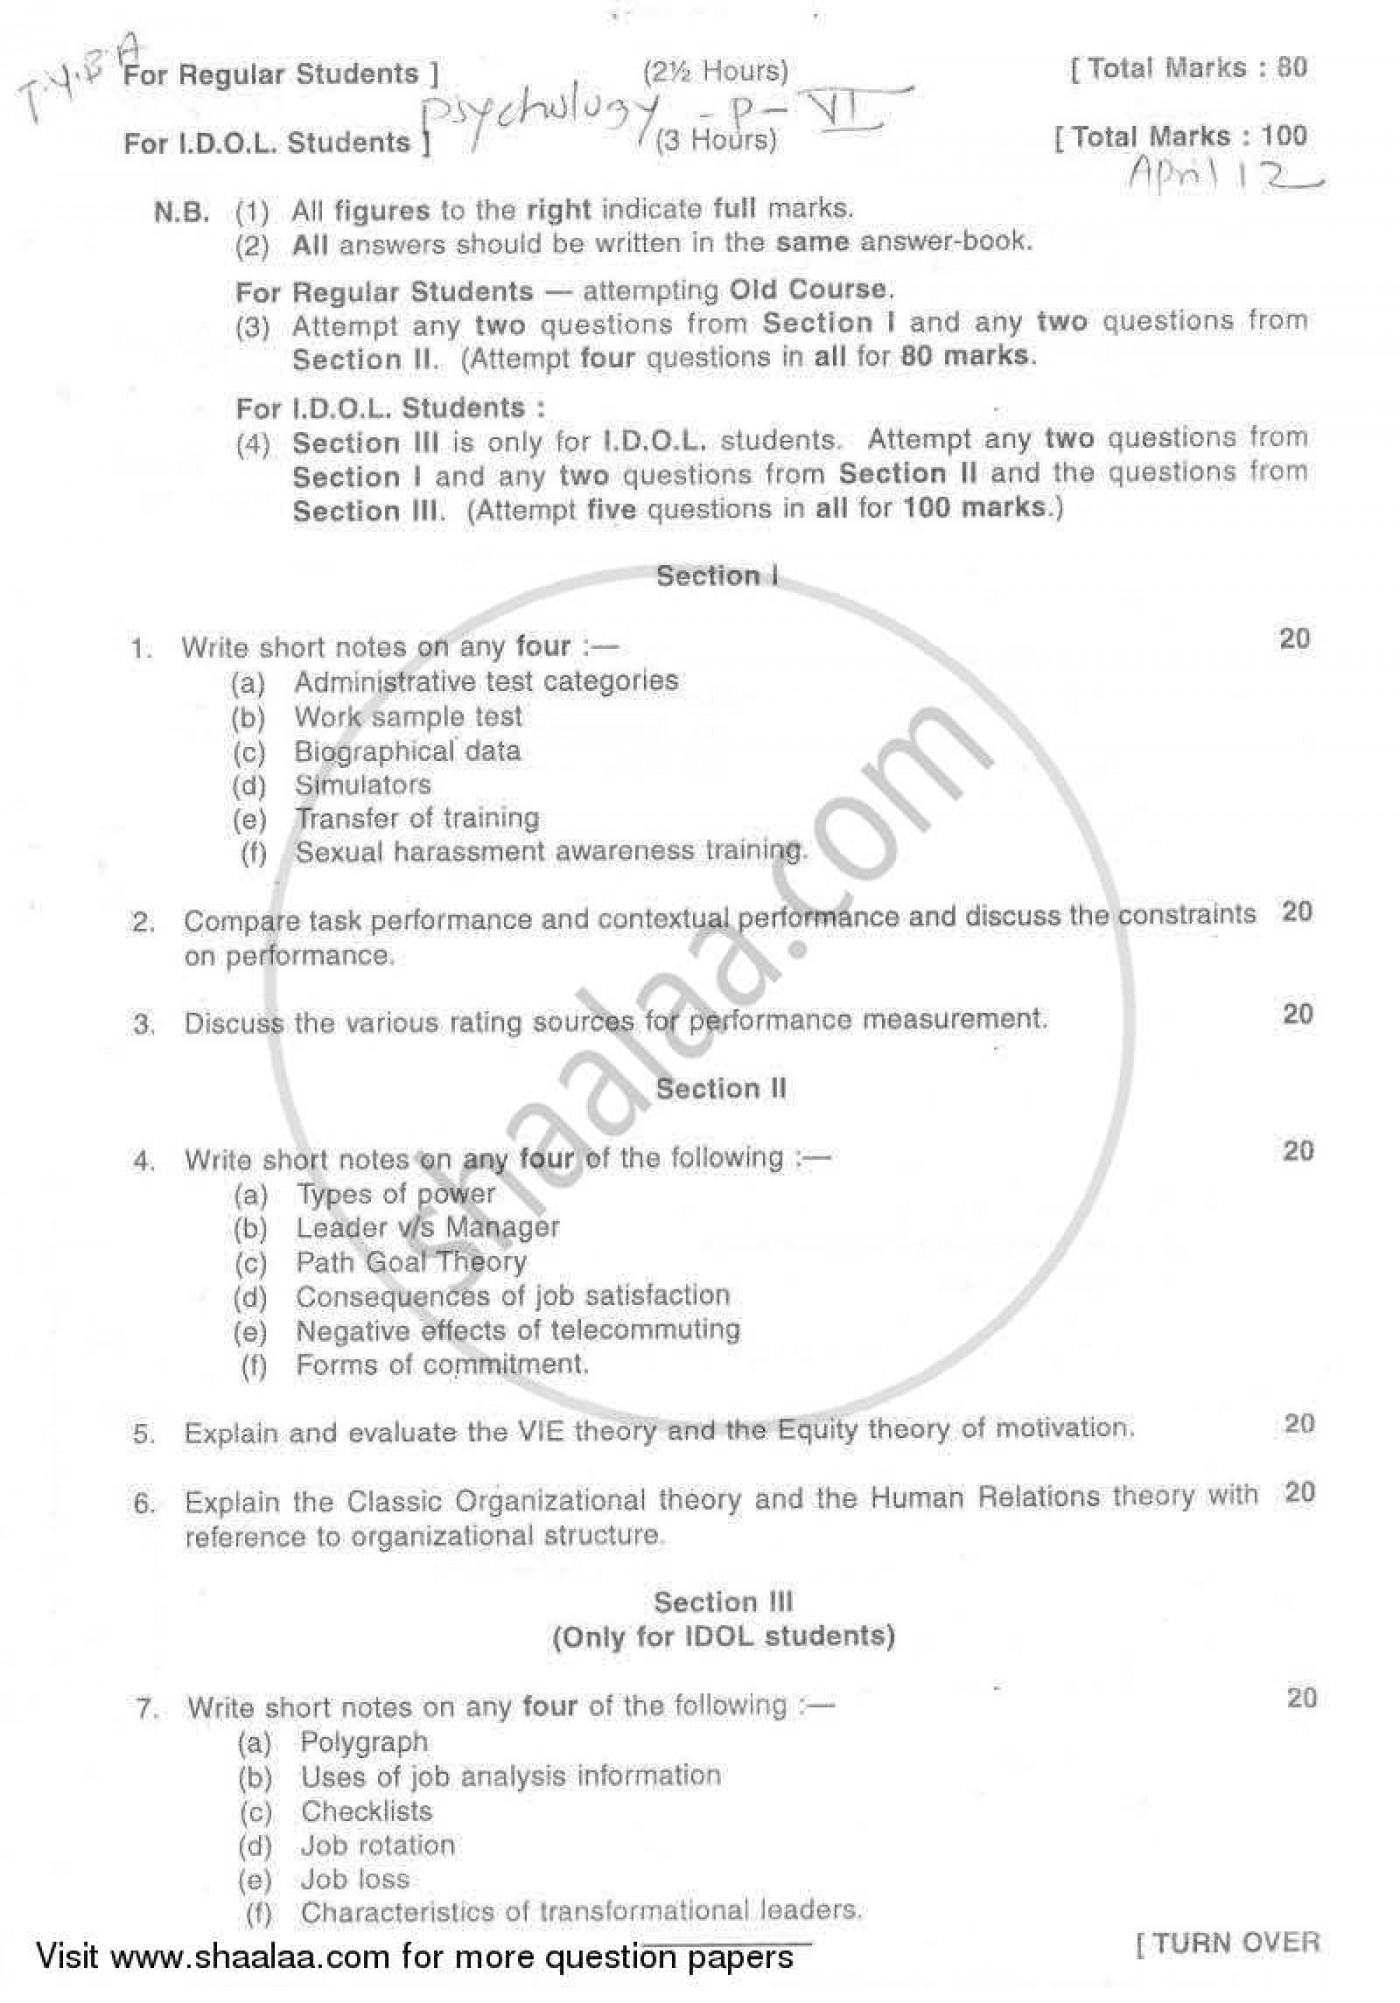 017 Psychologyearch Paper On Dreams University Of Mumbai Bachelor Industrial Organizational T Y Yearly Pattern Semester Tyba 2011 29a03925dfc524f2aa4cb10e4d3da996a Singular Psychology Research Articles 1400